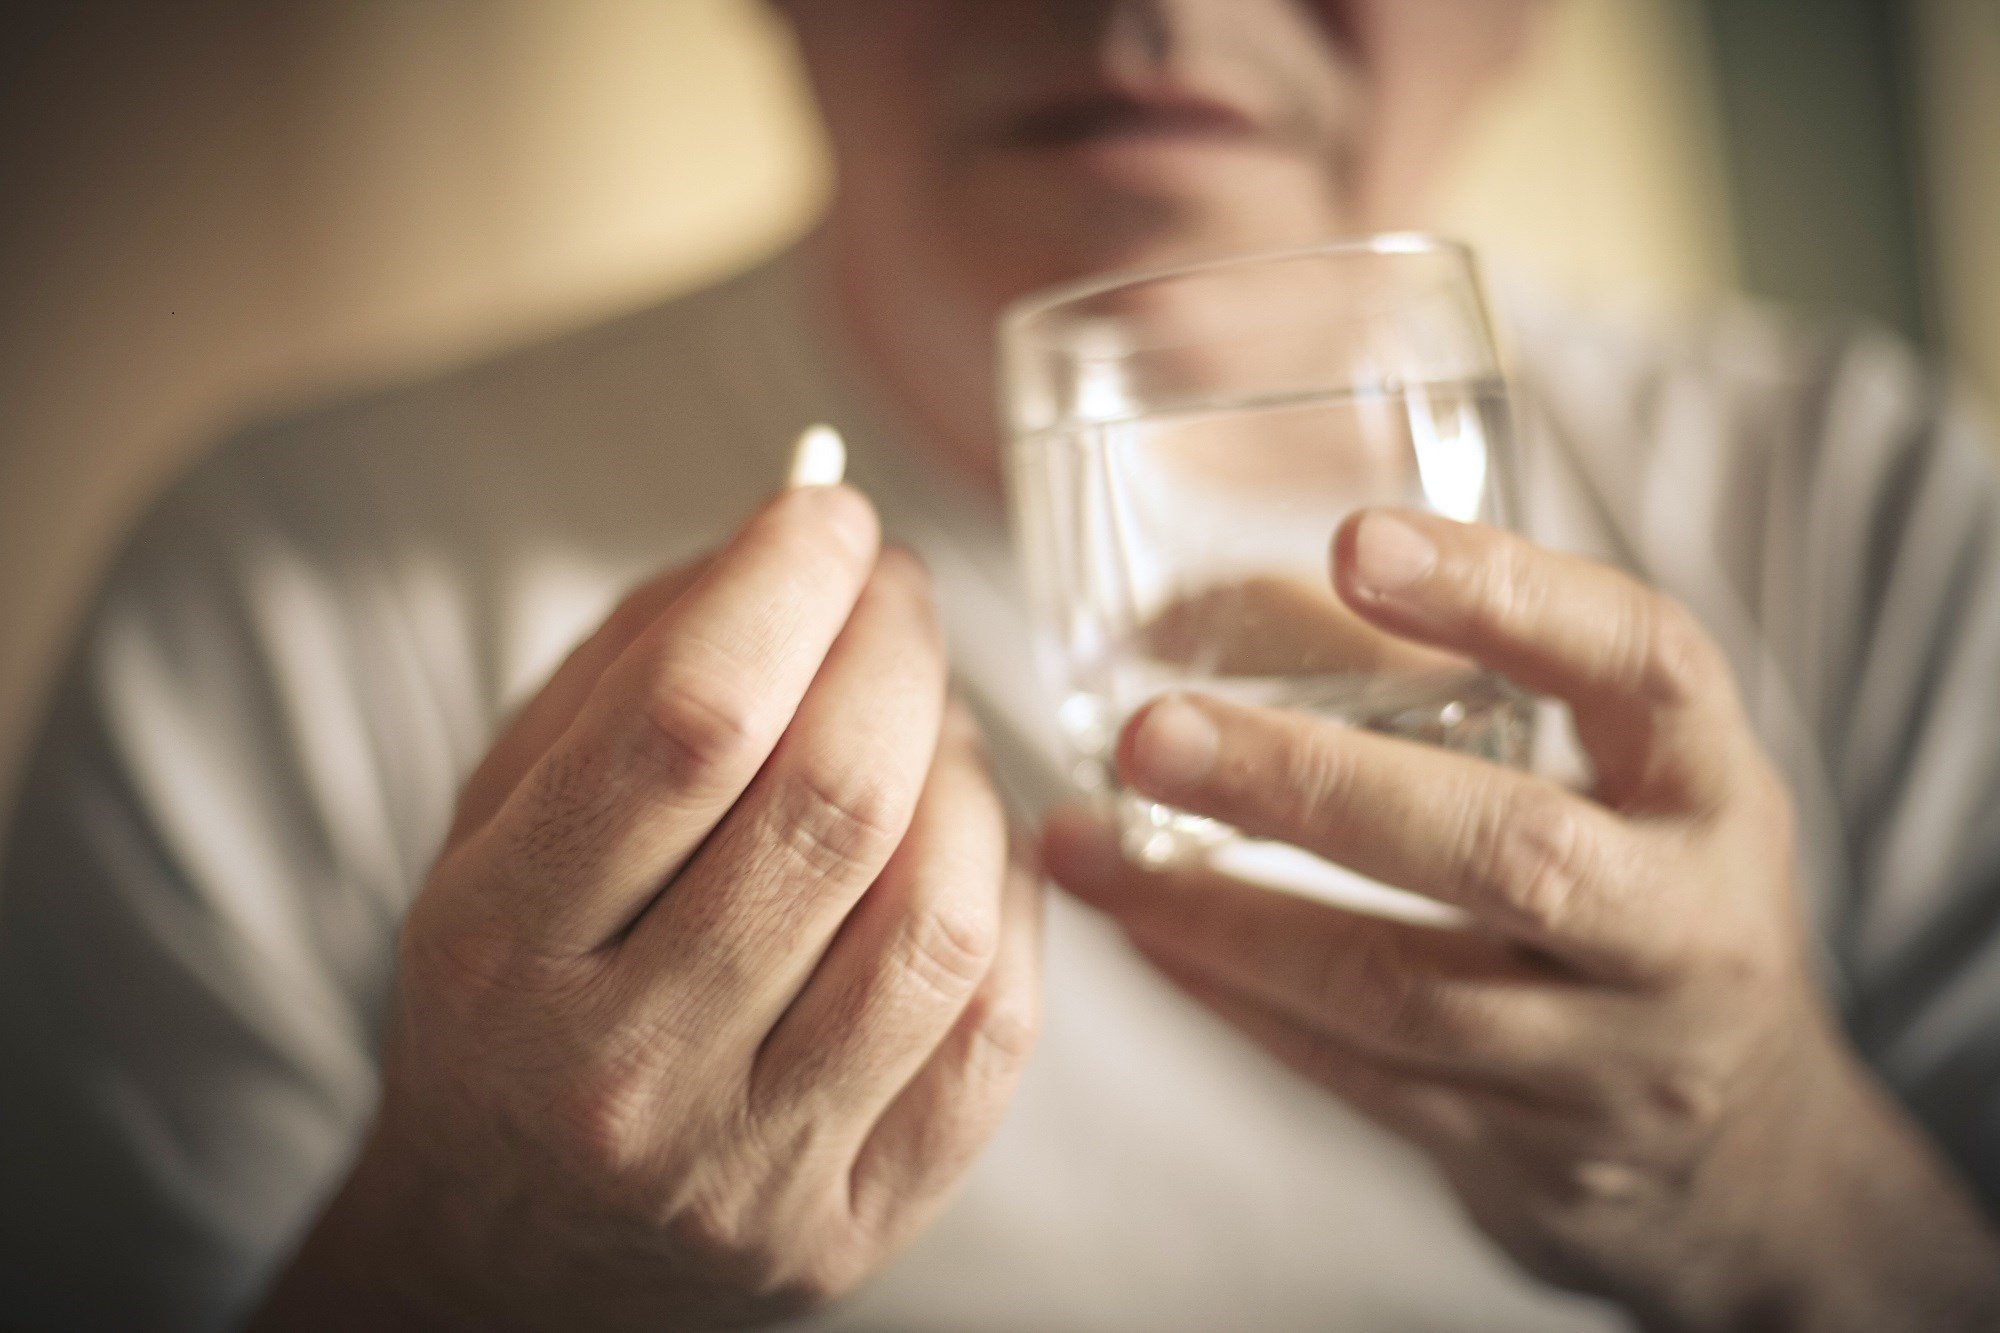 Clozapine Monotherapy Improves Antipsychotic-Induced Tardive Dyskinesia